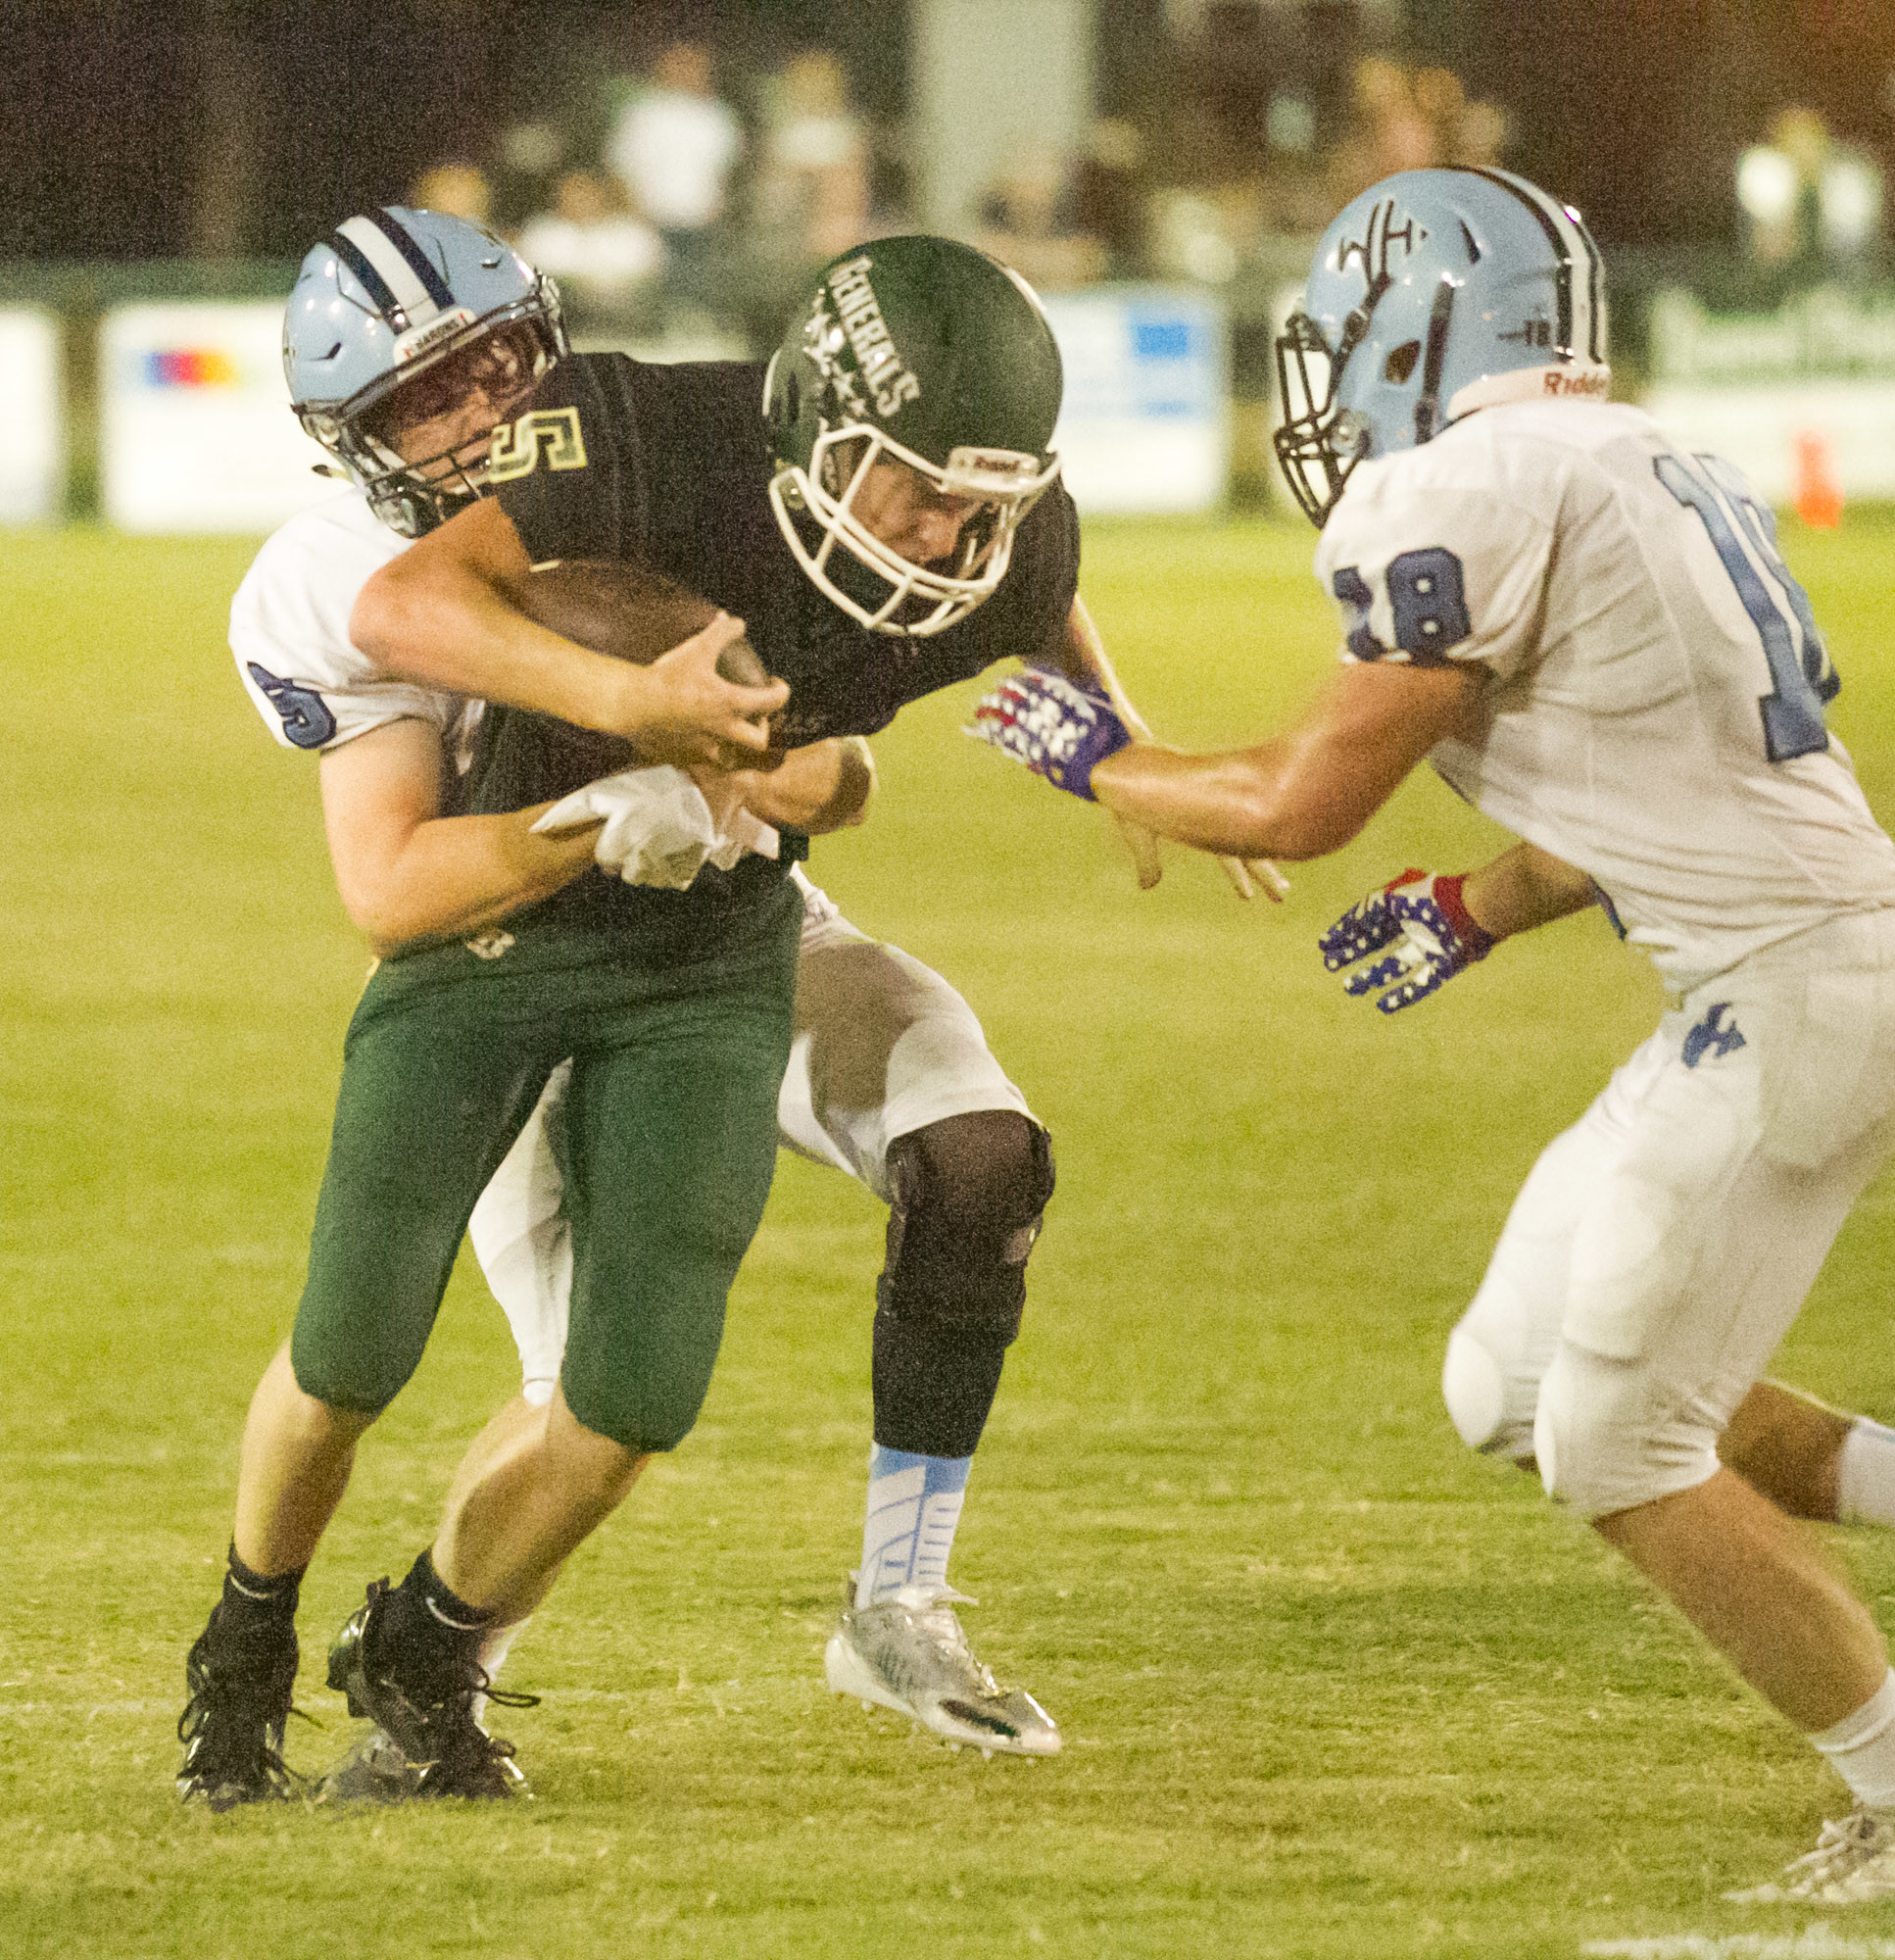 Thomas Sumter Academy's Mason Warren (5) fights for extra yardage as he's defended by Wilson Hall's Harrison Hudson, back, and Brandon Carraway during the Generals' 35-7 loss on Friday at General Field in Dalzell.